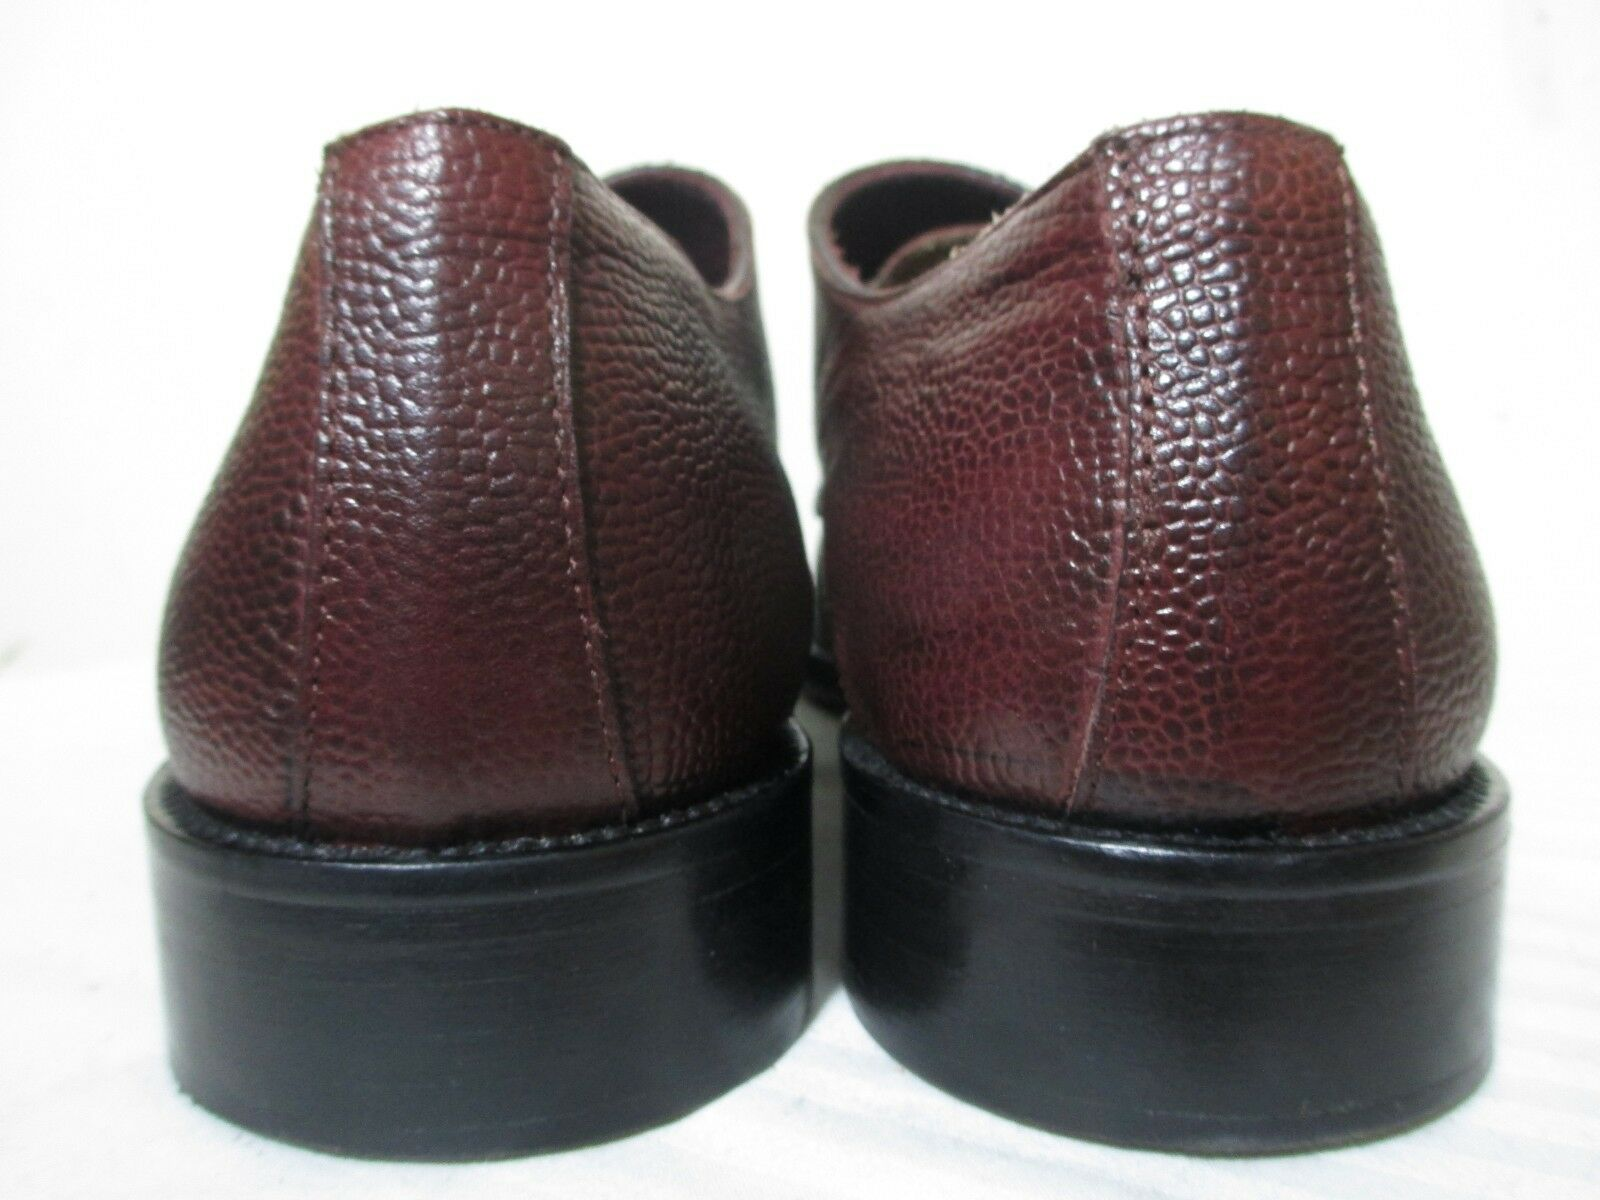 WALL+WATER Uomo'S Uomo'S Uomo'S BURGUNDY PEBBLED LEATHER DOUBLE MONK DRESS SHOES 10 ITALY 0013bd